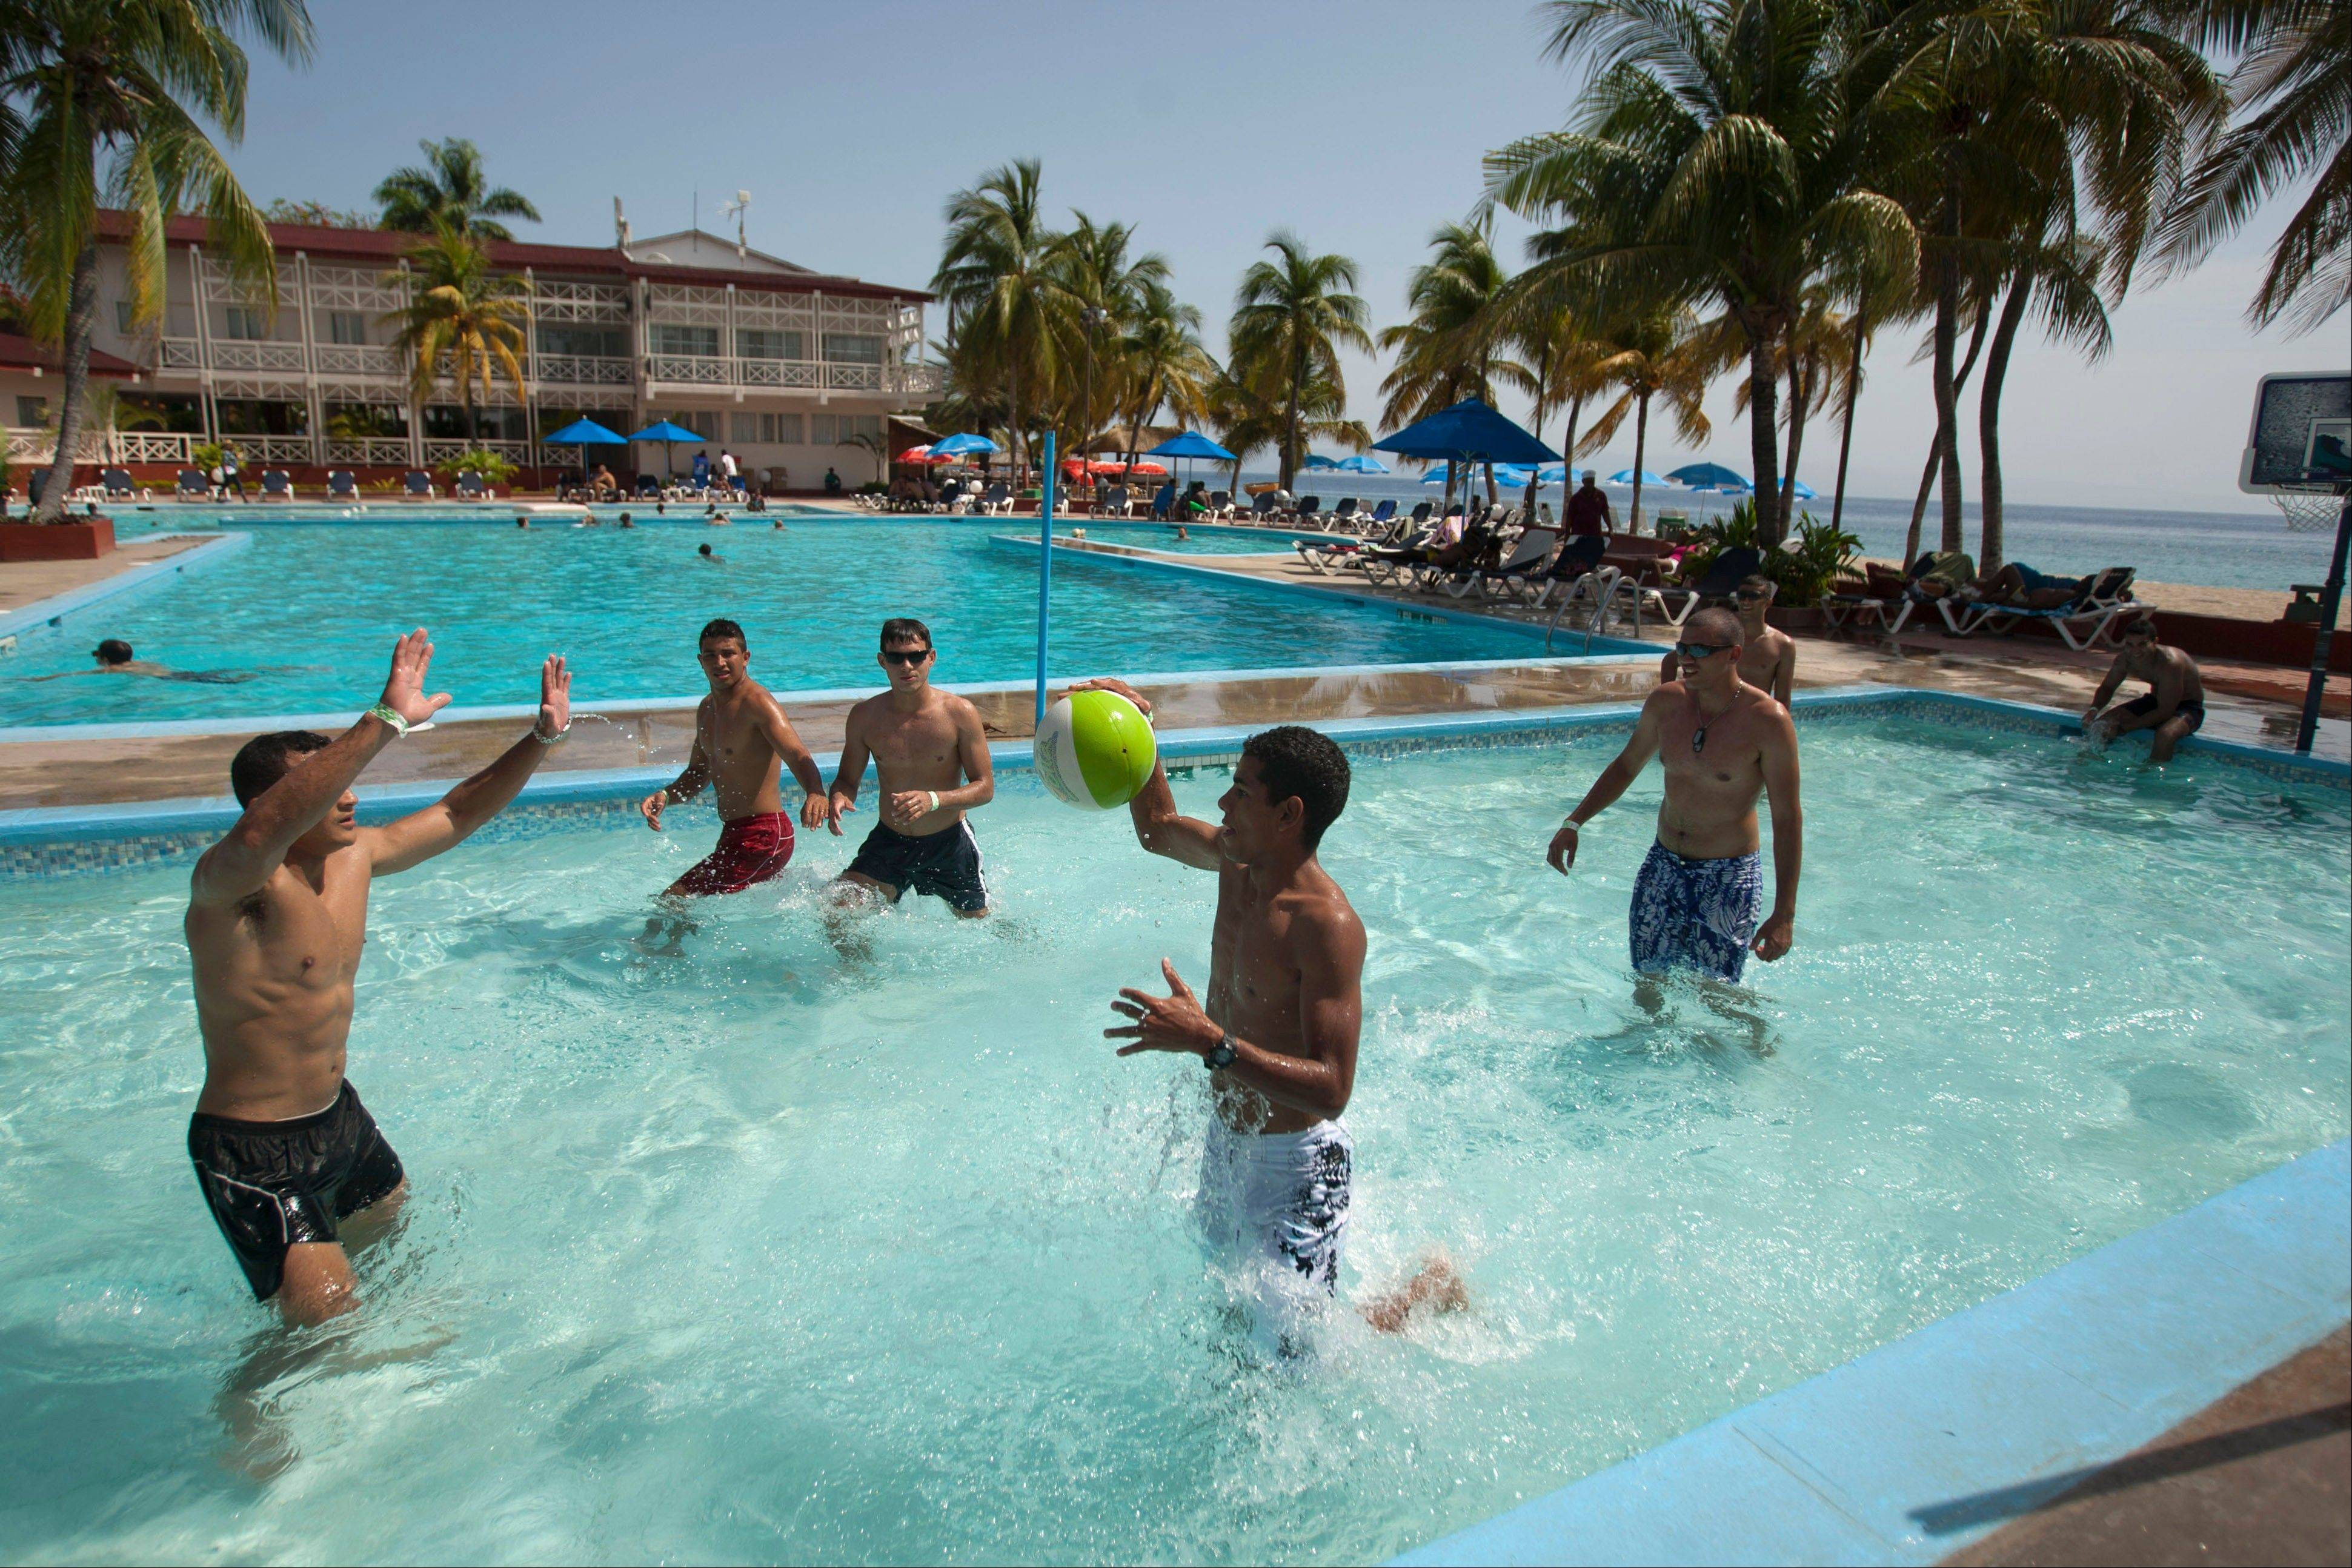 Tourists play pool basketball at Club Indigo beach resort in Montrouis, Haiti. The Haitian government is trying to revive the country's long stagnant tourism industry.